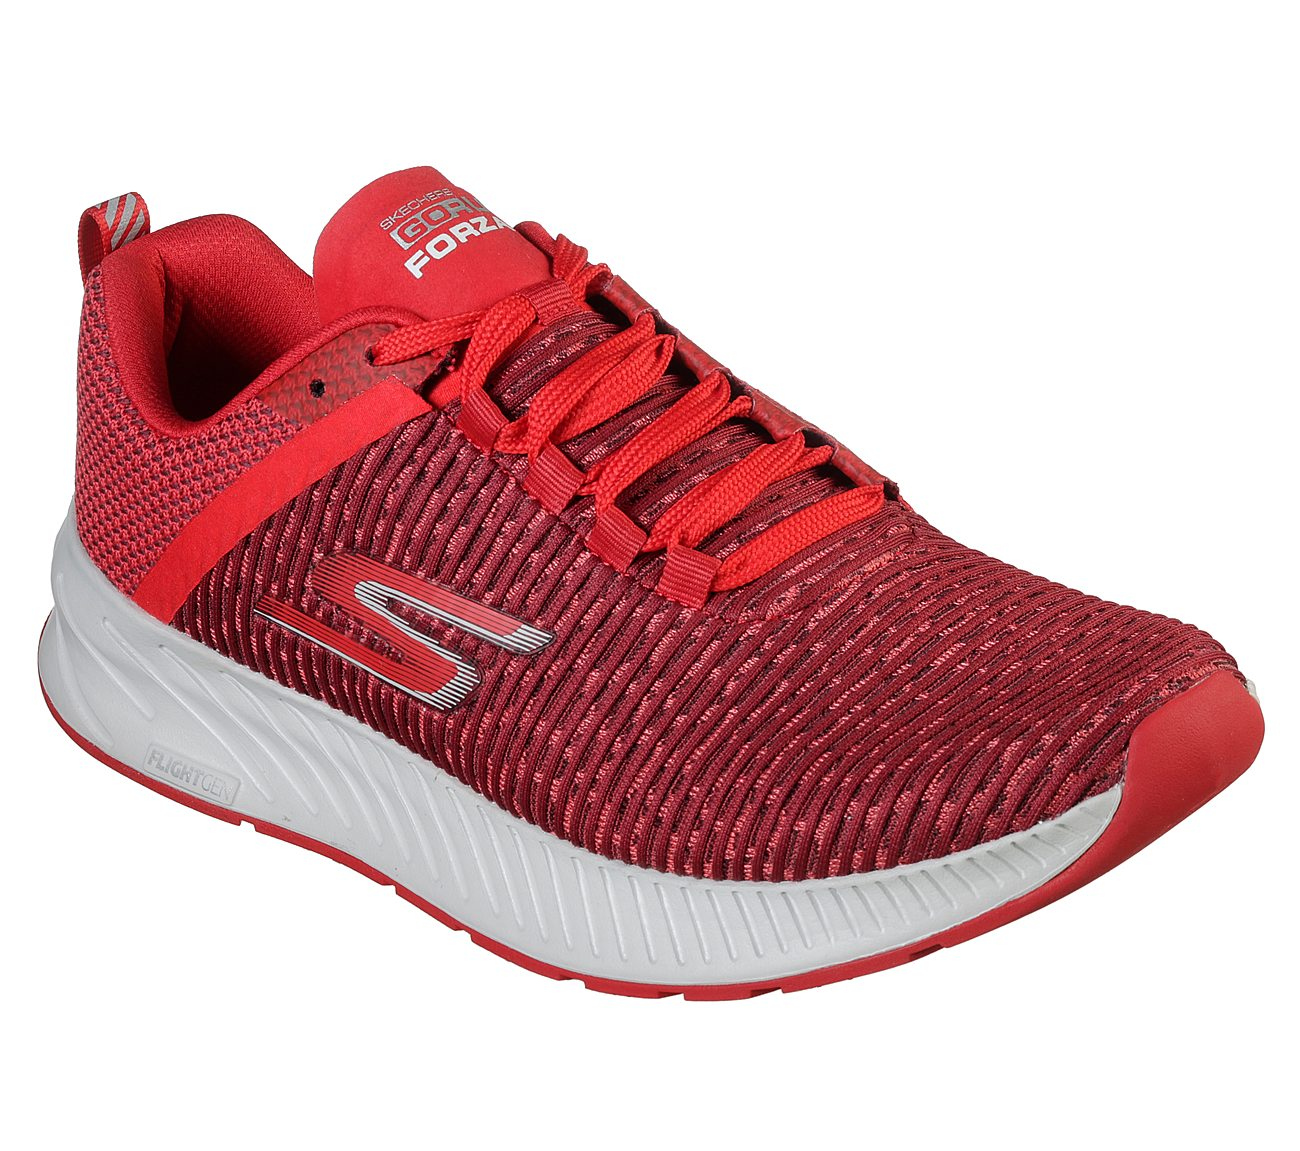 0444e7d78eb2 Buy SKECHERS Skechers GOrun Forza 3 Skechers Performance Shoes only ...